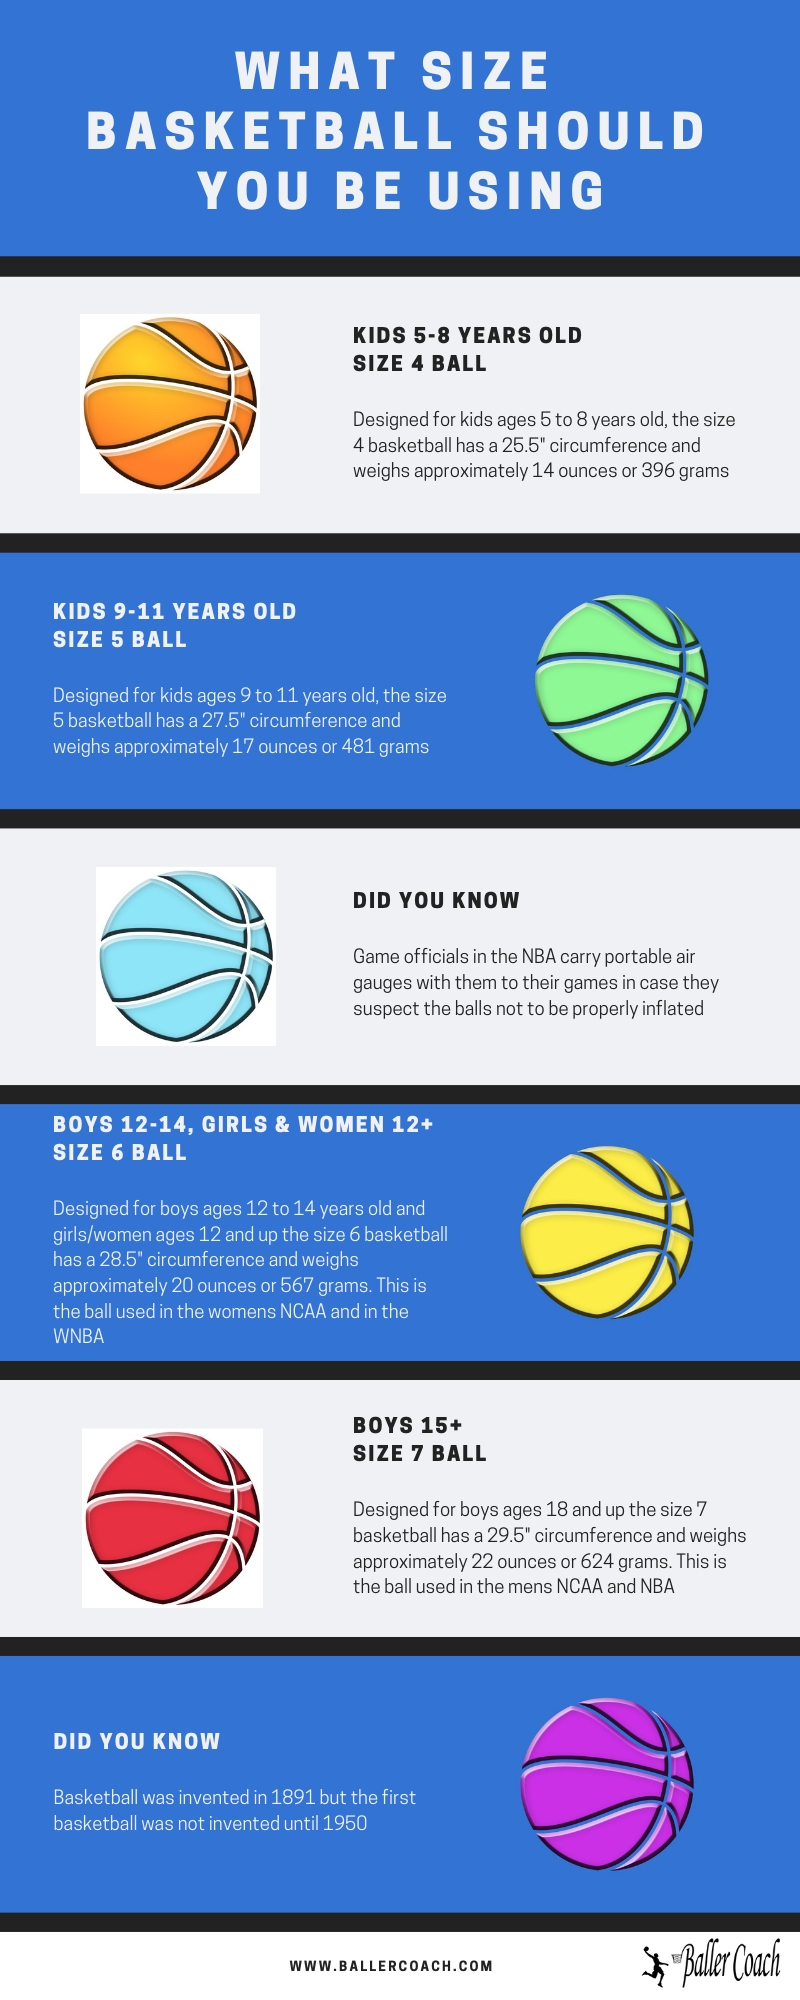 What size basketball should you use